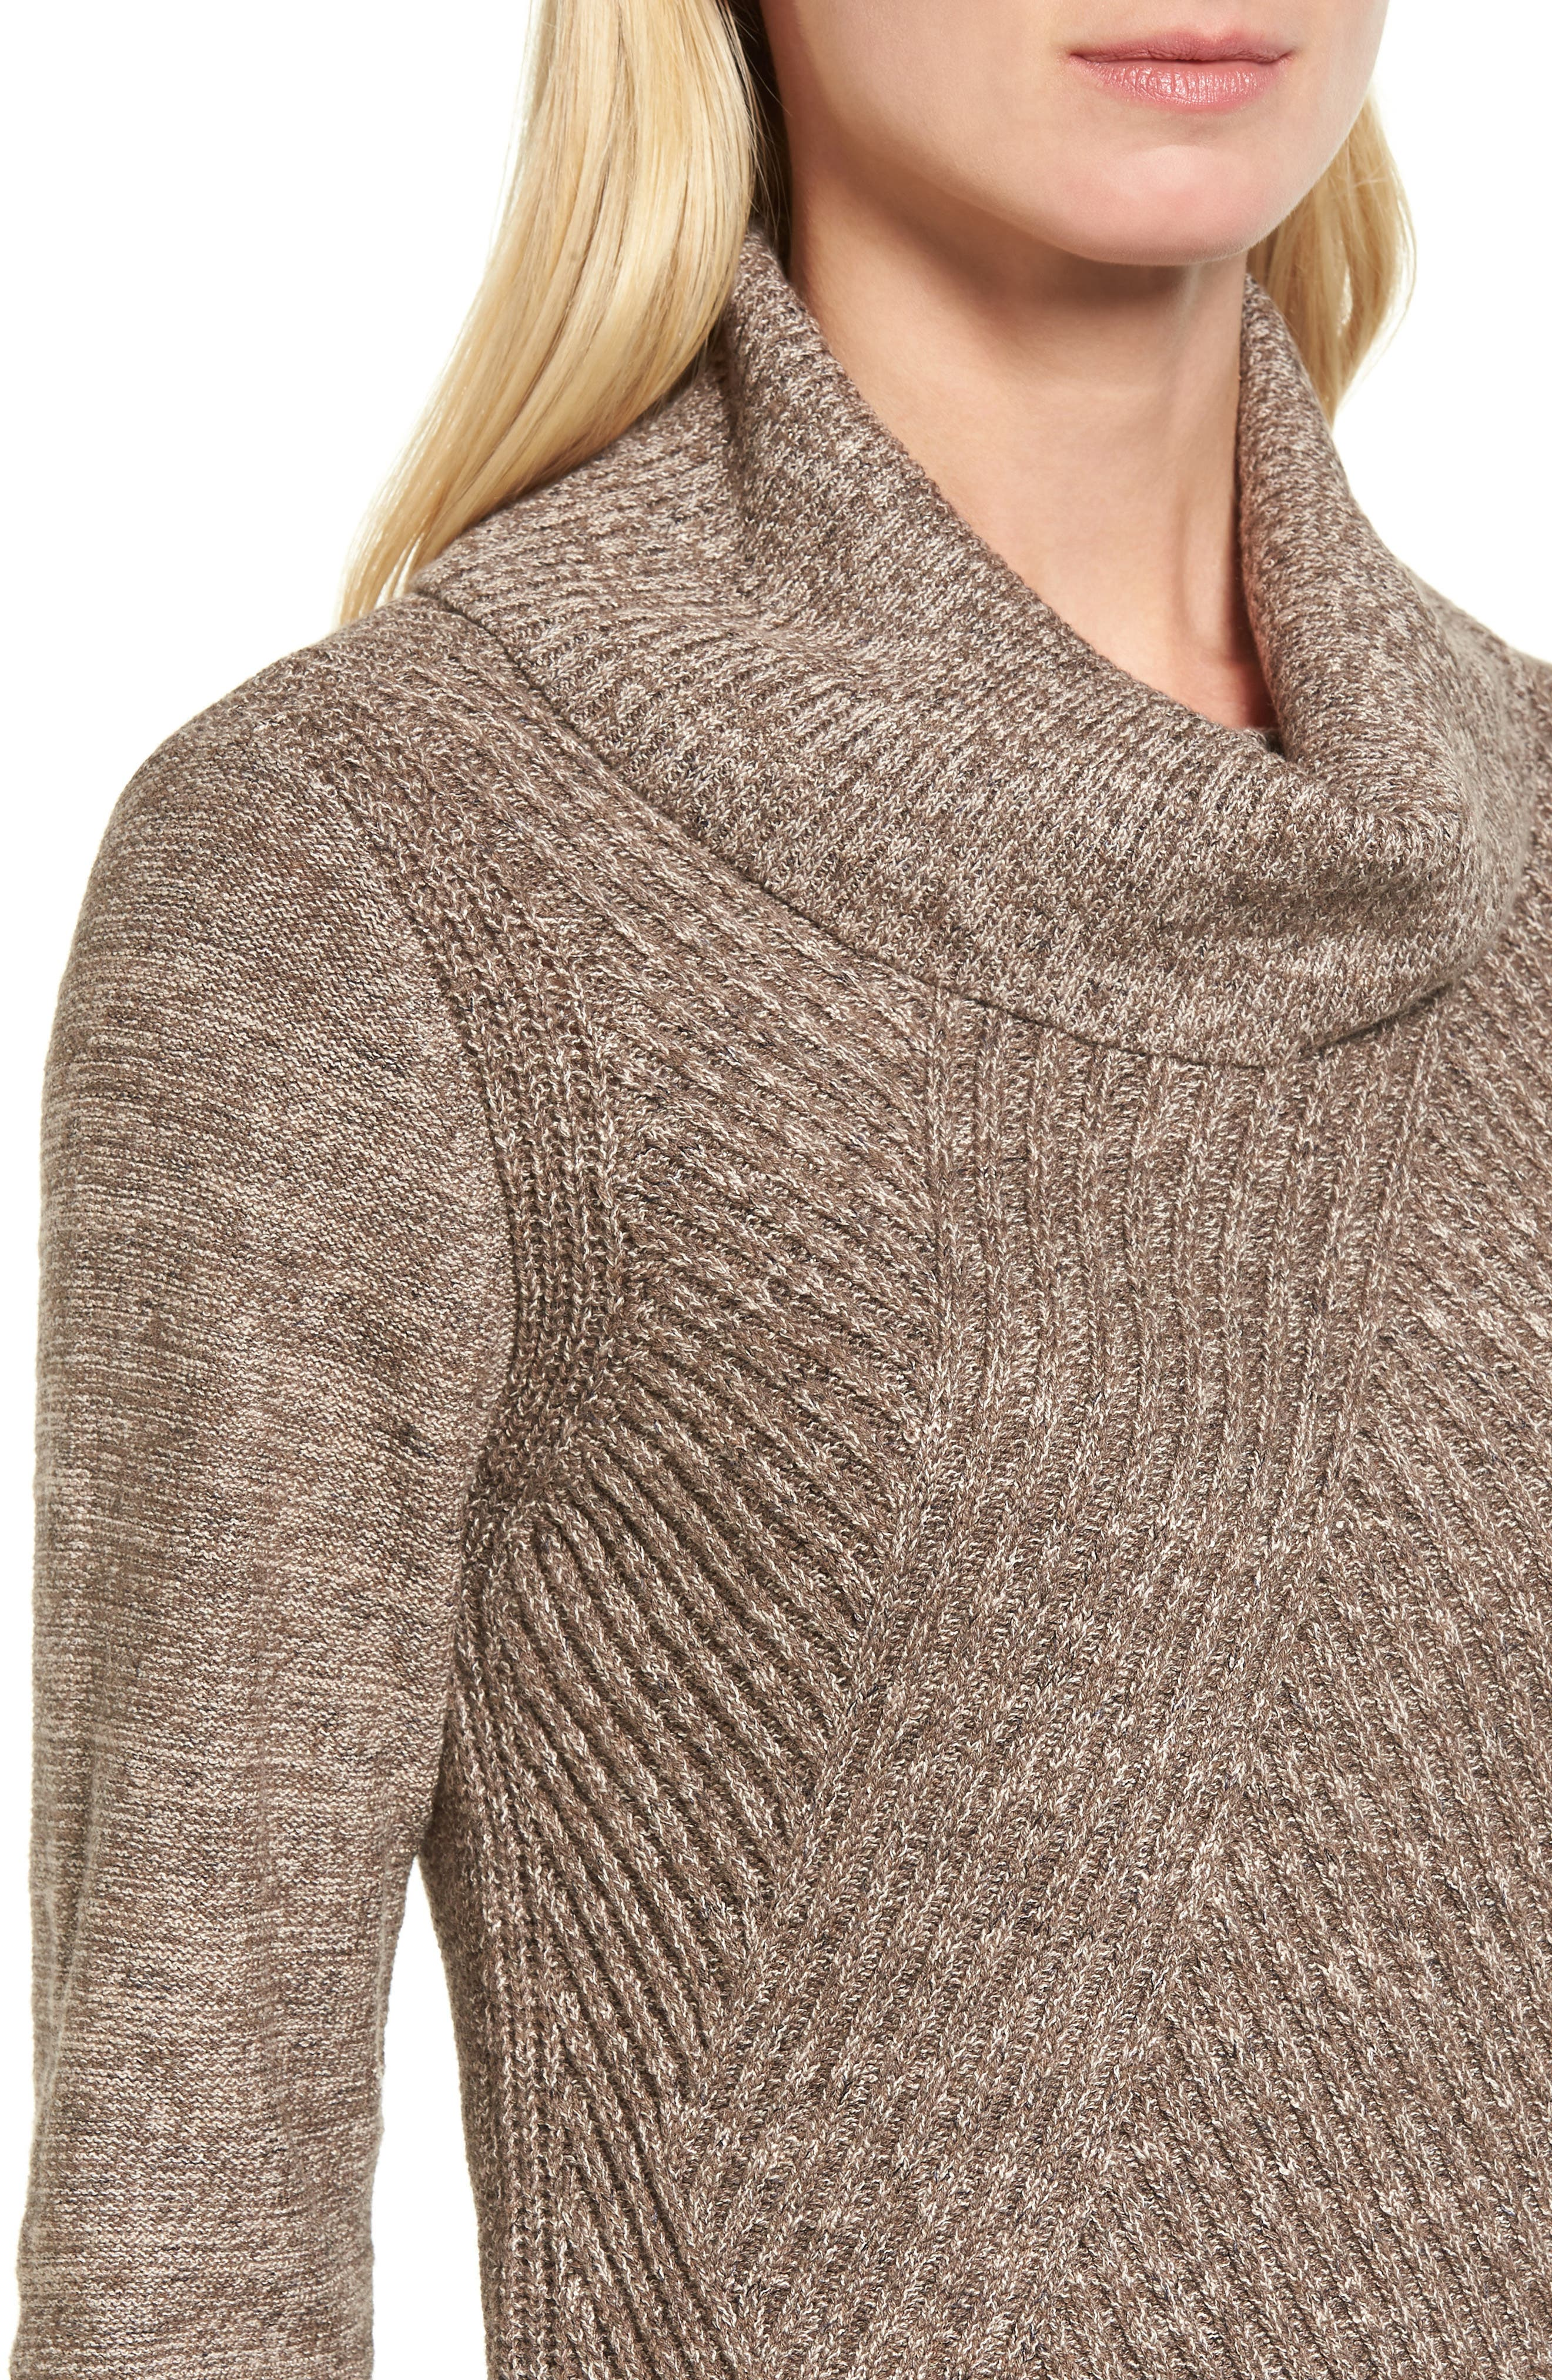 North Star Turtleneck Tunic,                             Alternate thumbnail 4, color,                             Kona